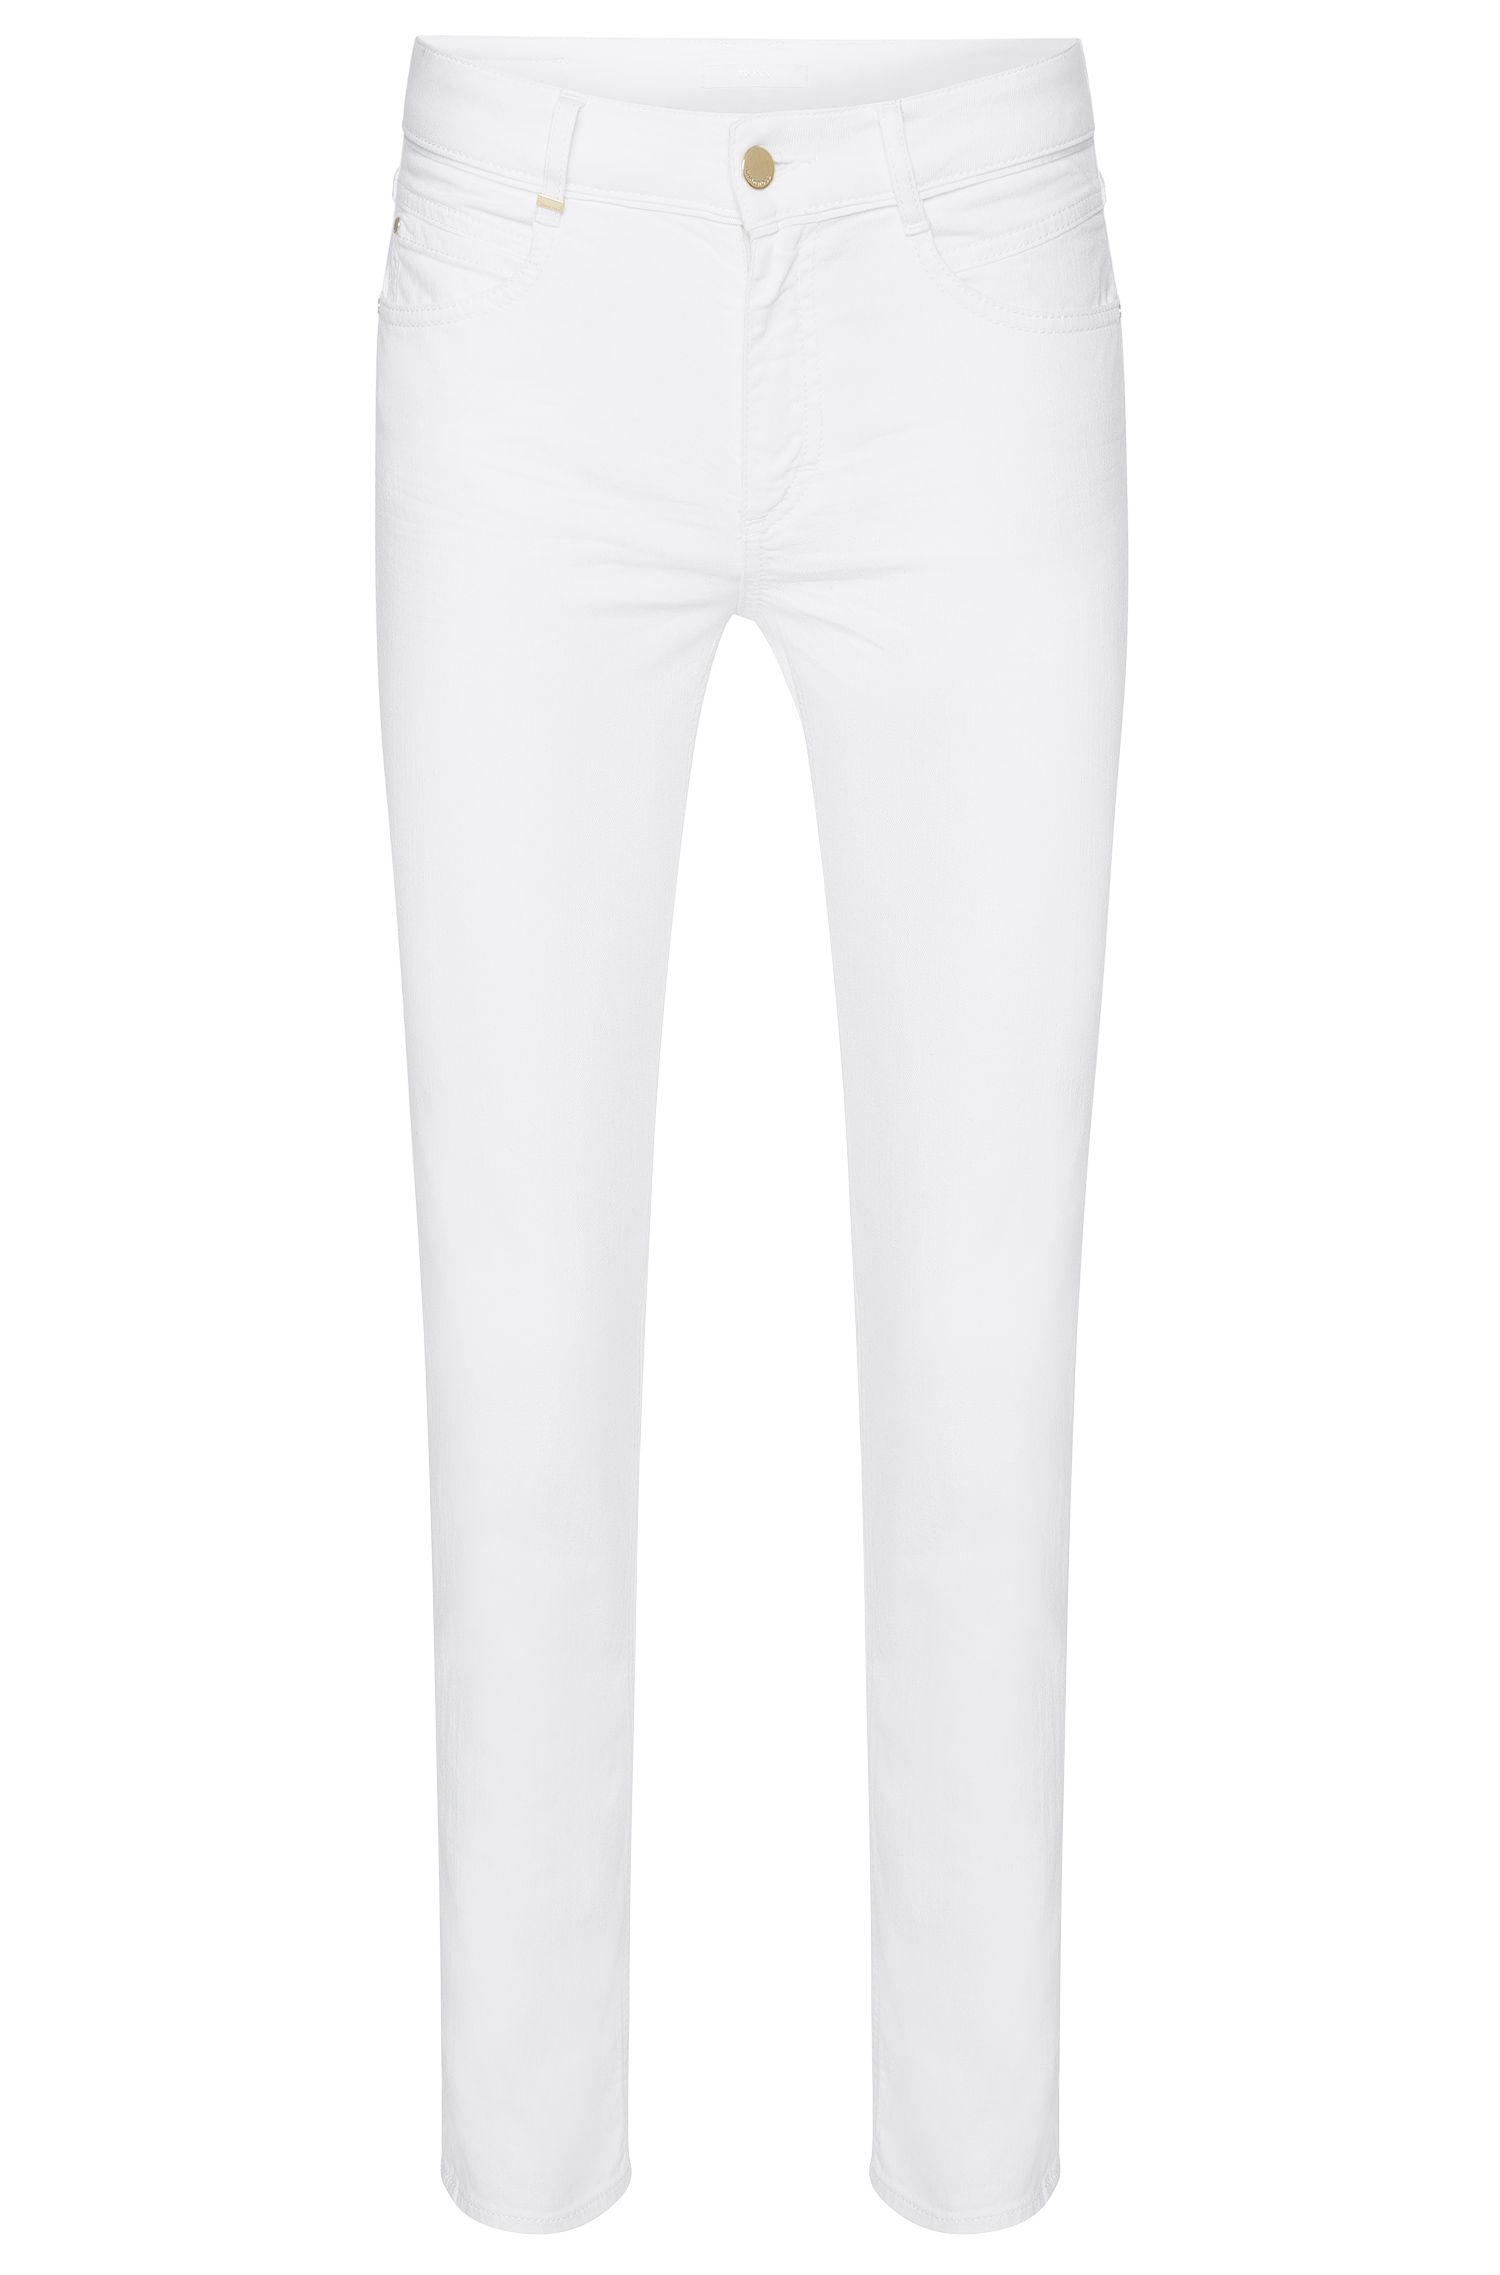 Jeans Regular Fit en coton stretch de longueur raccourcie : « Nelin Tape »